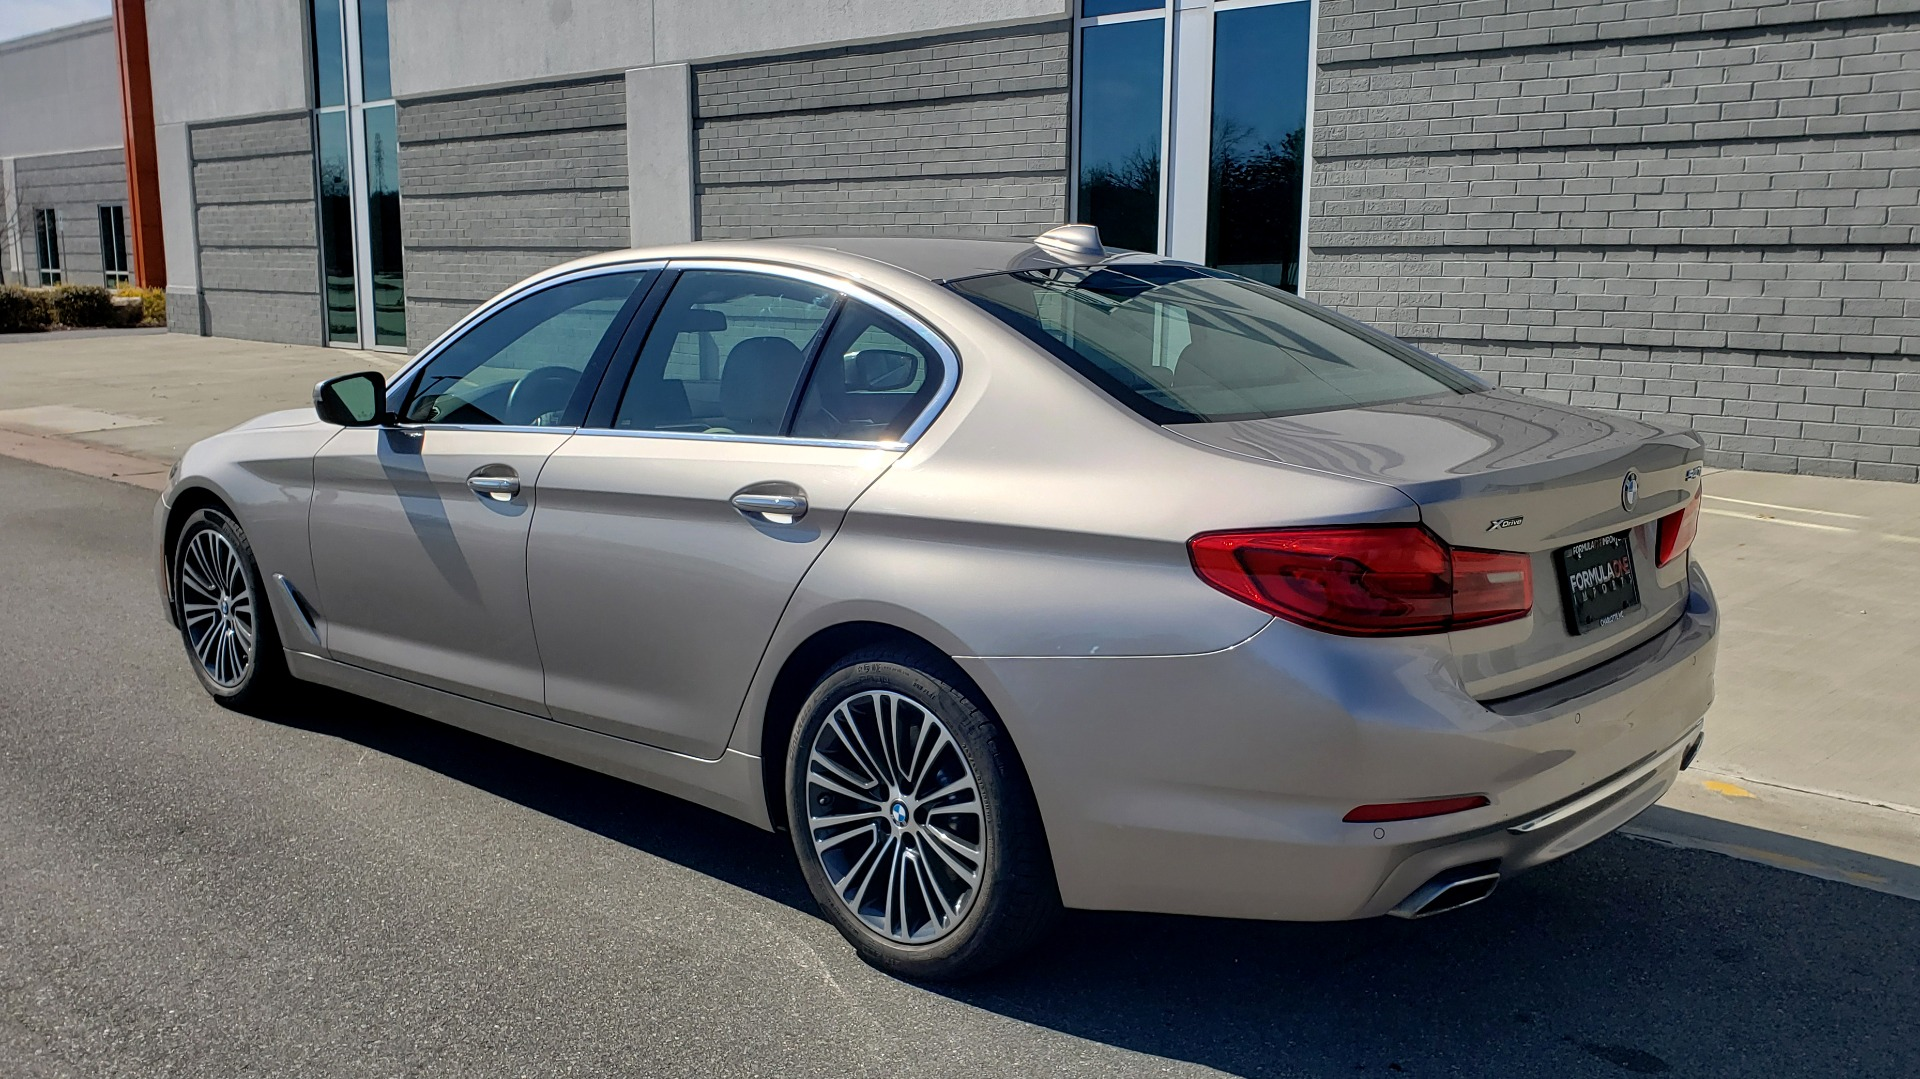 Used 2018 BMW 5 SERIES 540IXDRIVE PREMIUM / DRVR ASST PLUS / LUX PKG / APPLE CARPLAY for sale Sold at Formula Imports in Charlotte NC 28227 3